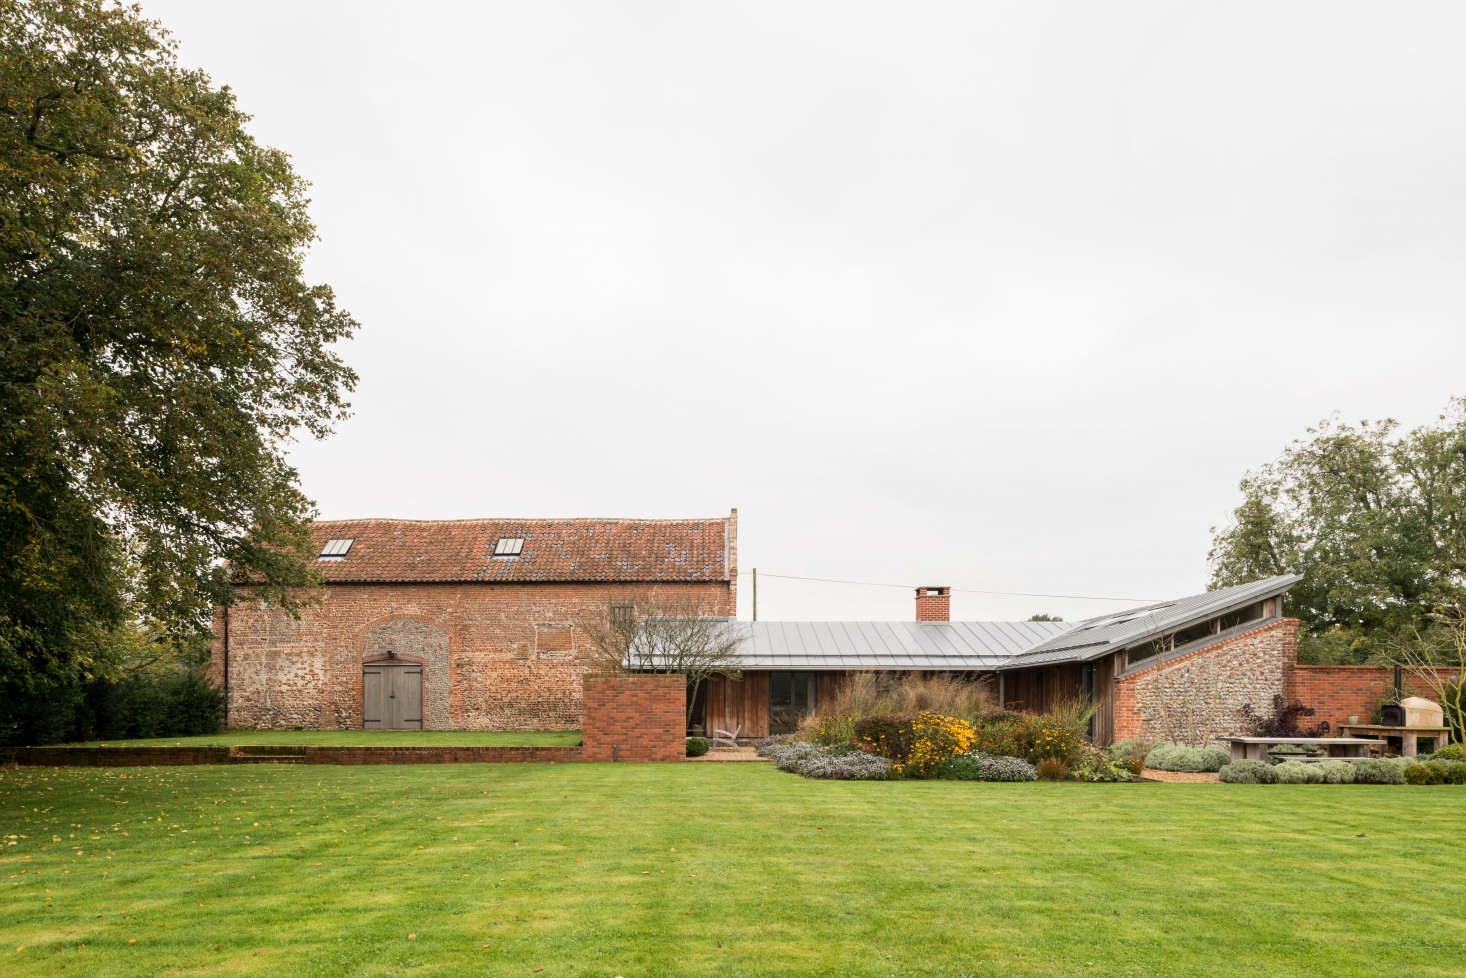 The building on the left is anold tithe barn, where in centuries past the local clergy stored the taxes they collected from surrounding villages. At right is the remodeled piggery, in which Erlam and her husband and two children live.